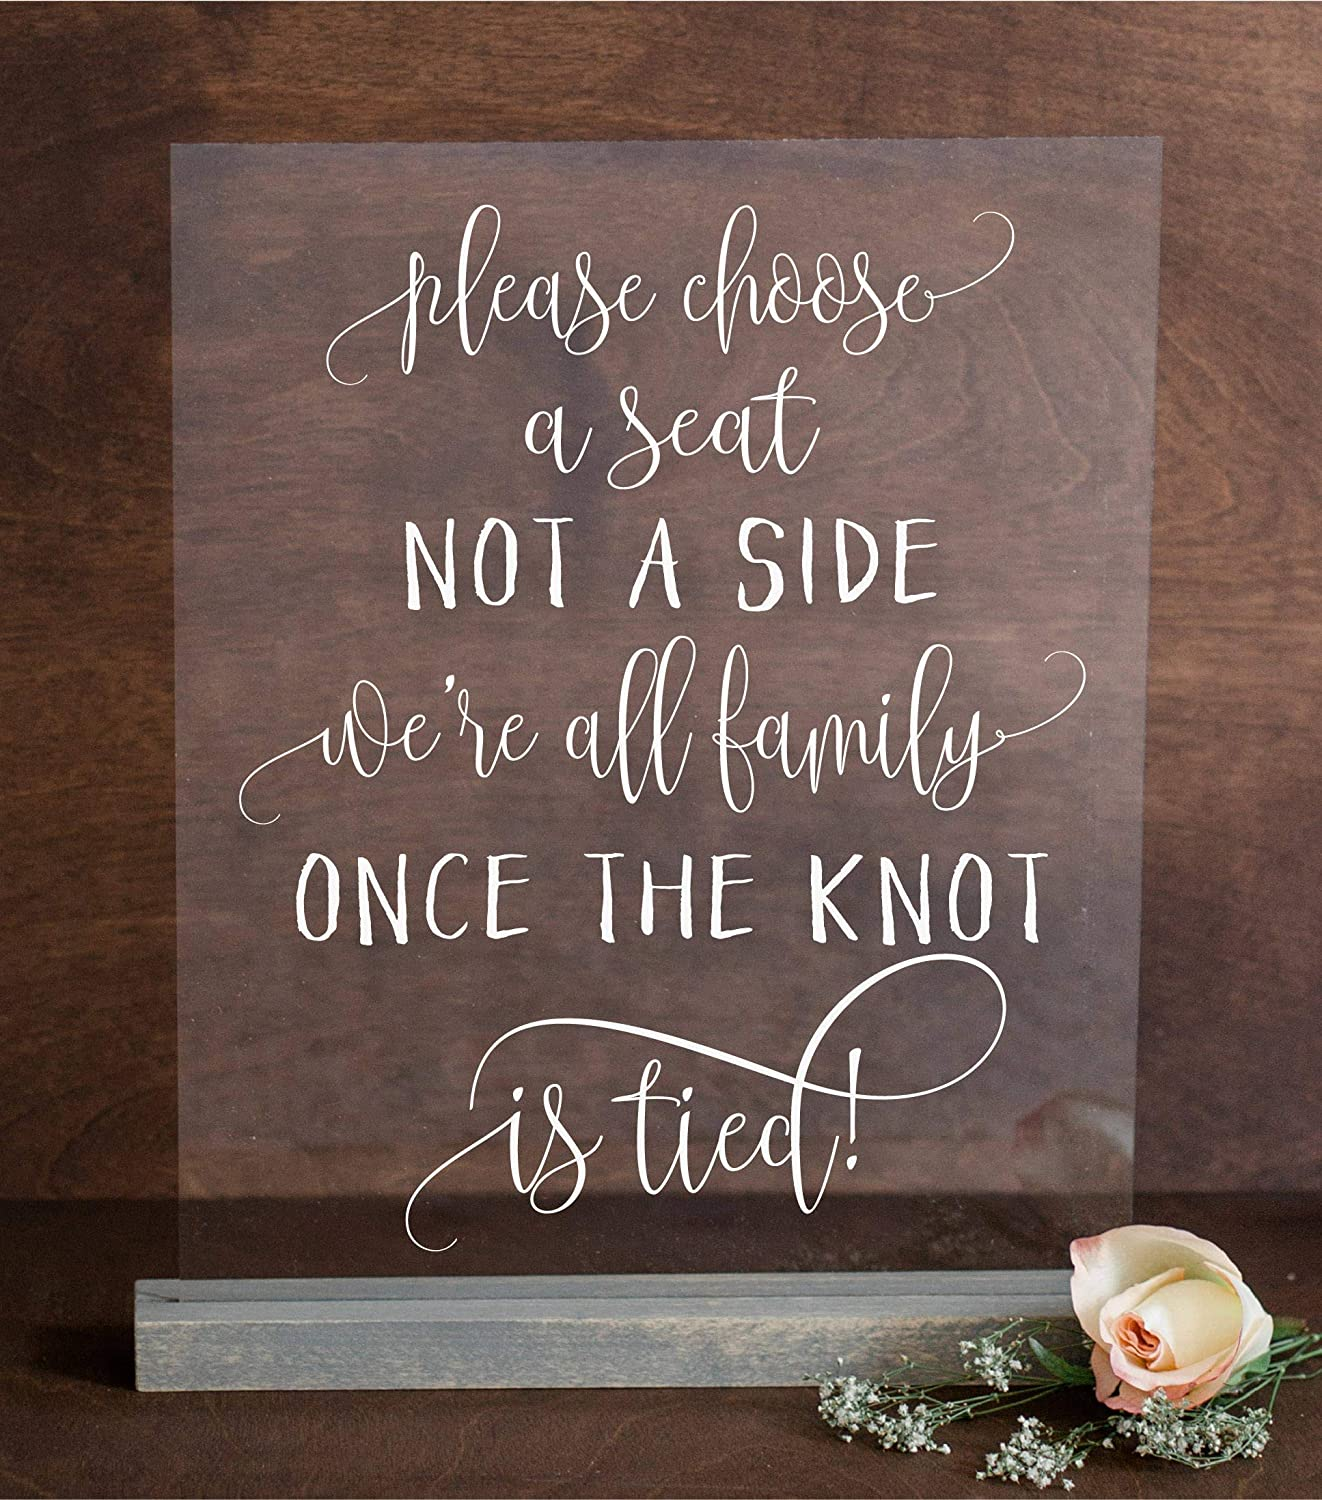 Wedding choose a seat signplease choose a seat not a side were all family once the knot is tied wedding custom sign wedding decor tabletop display on